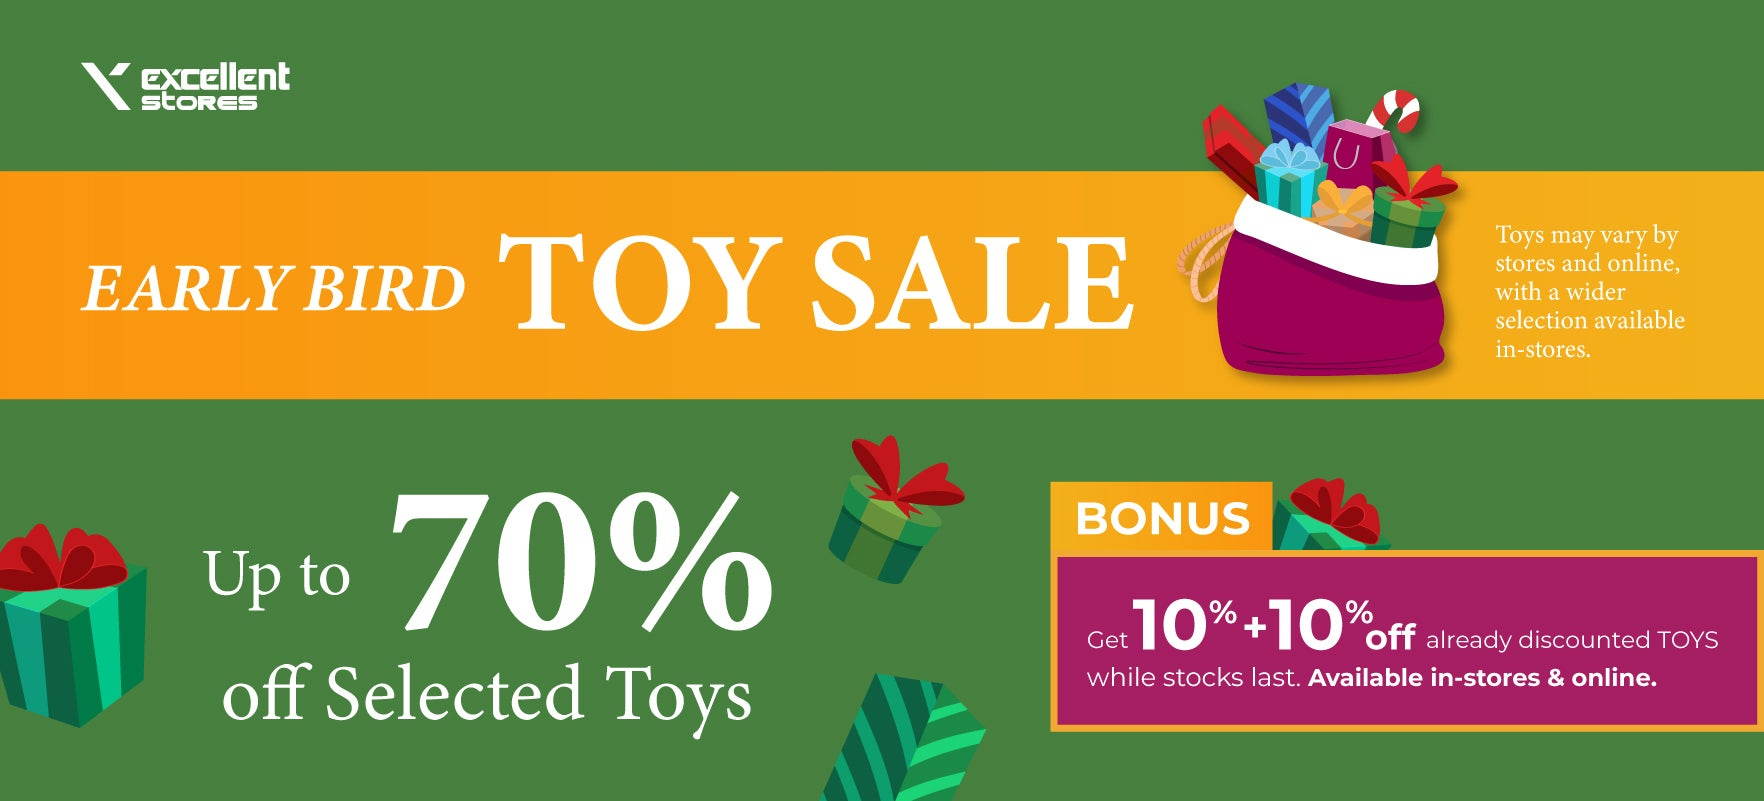 Early Bird Toy Sale!